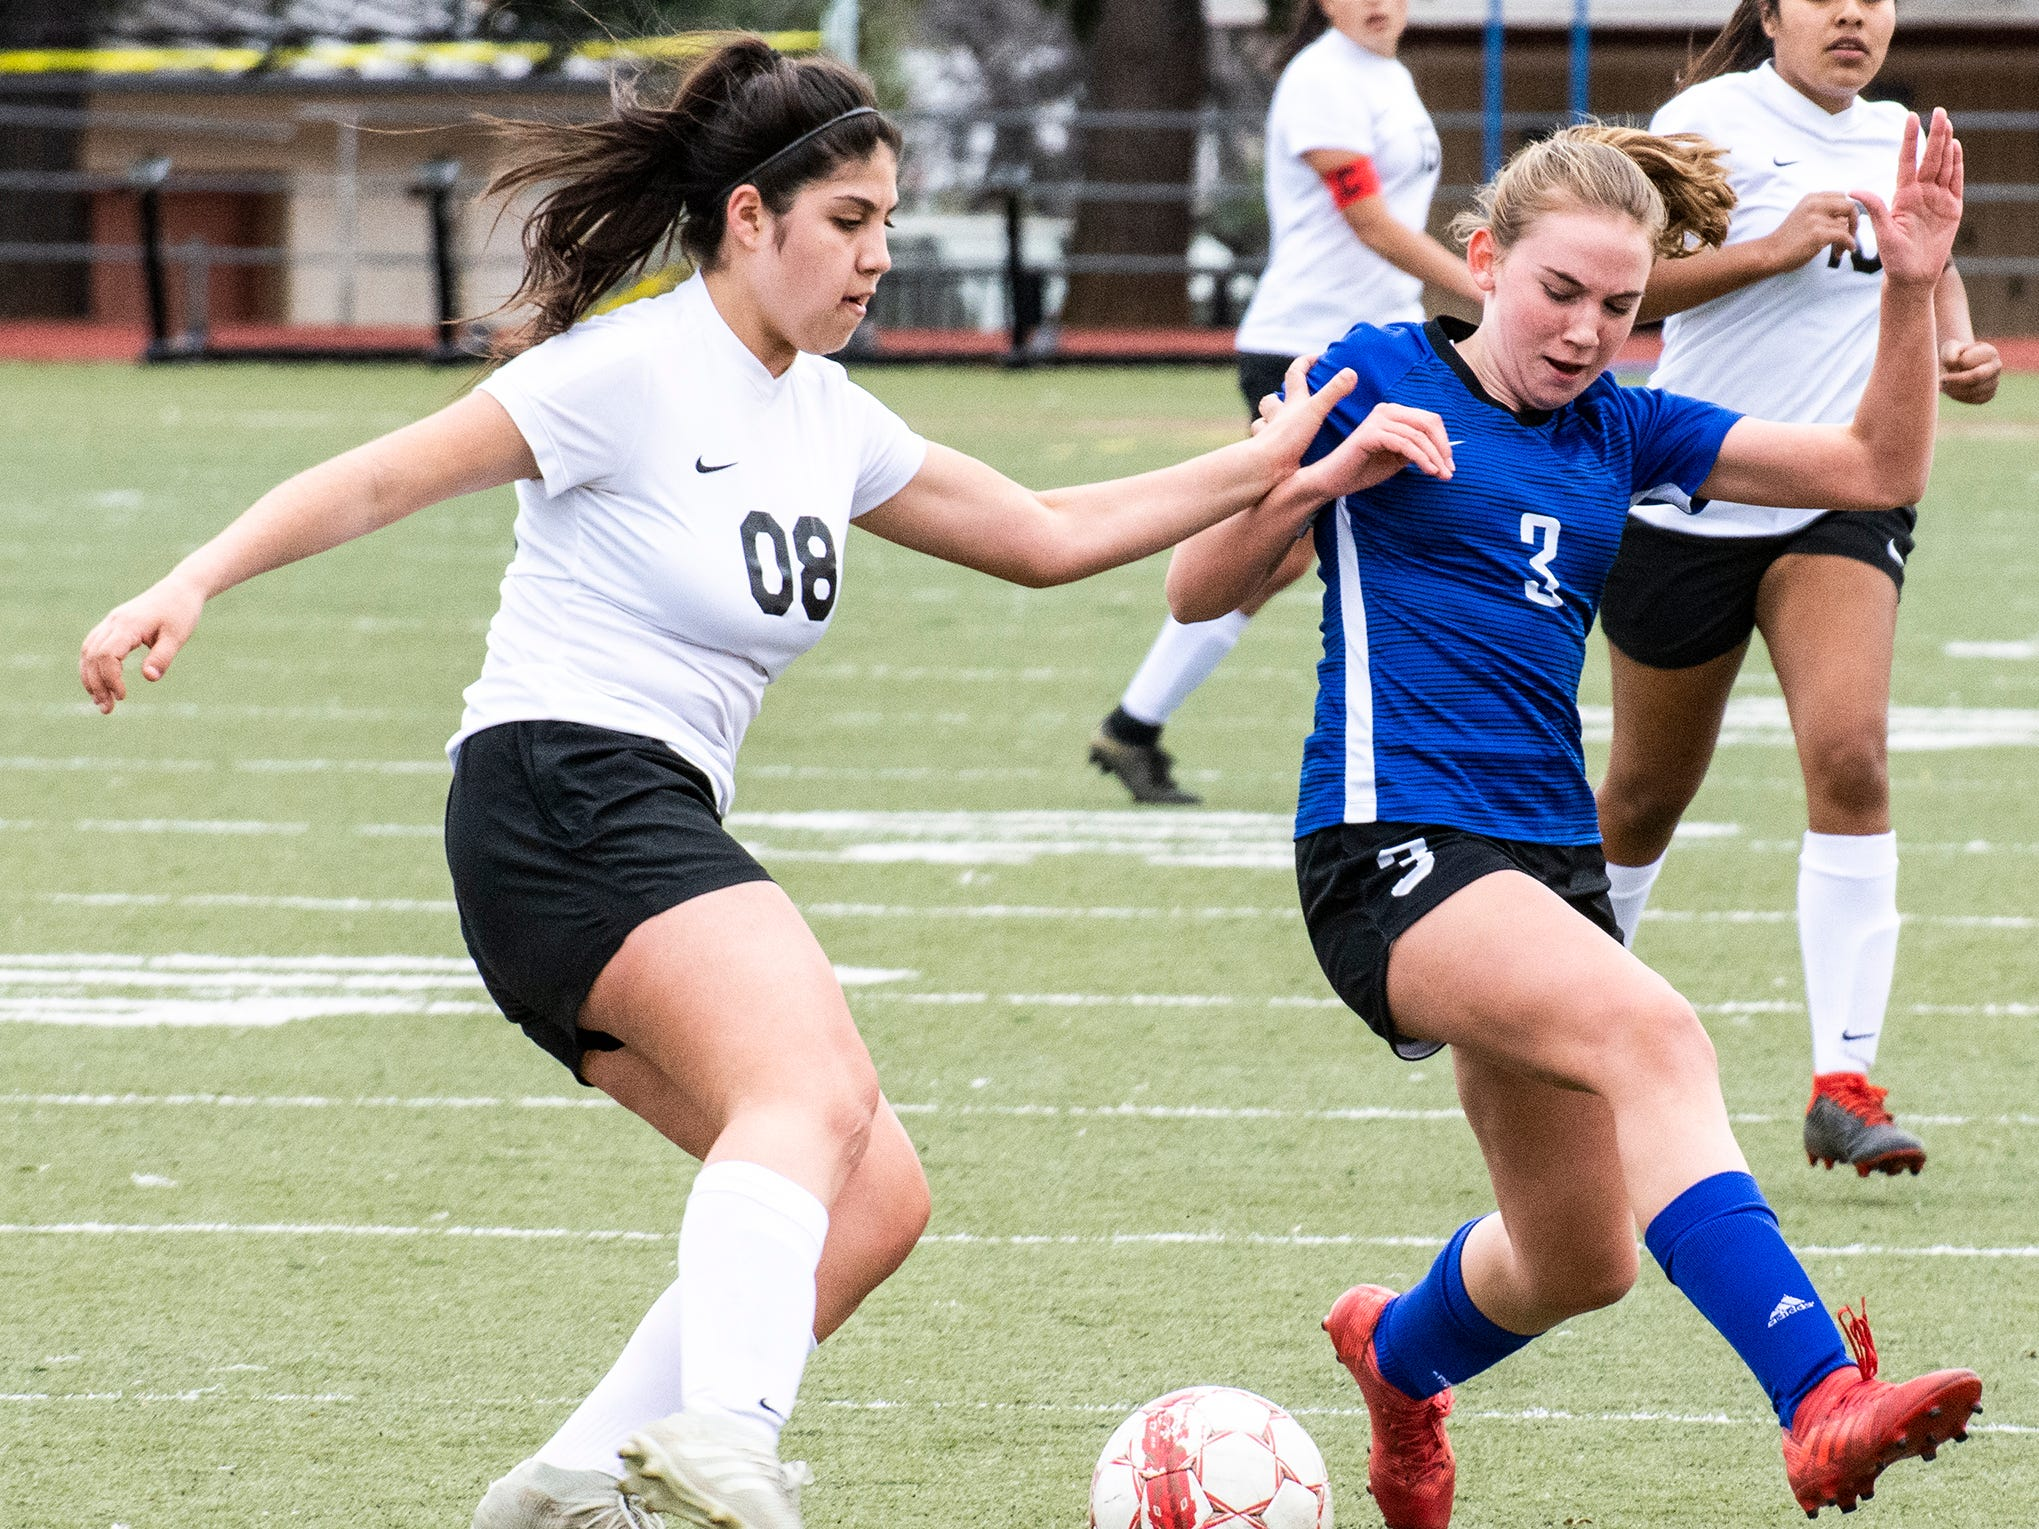 U-Prep junior Sami Isheim (right) and Corning's Gissel Rico fight for possession of the ball during the Panthers' 4-1 win in the Division II Northern Section championship on Saturday, Feb. 23.